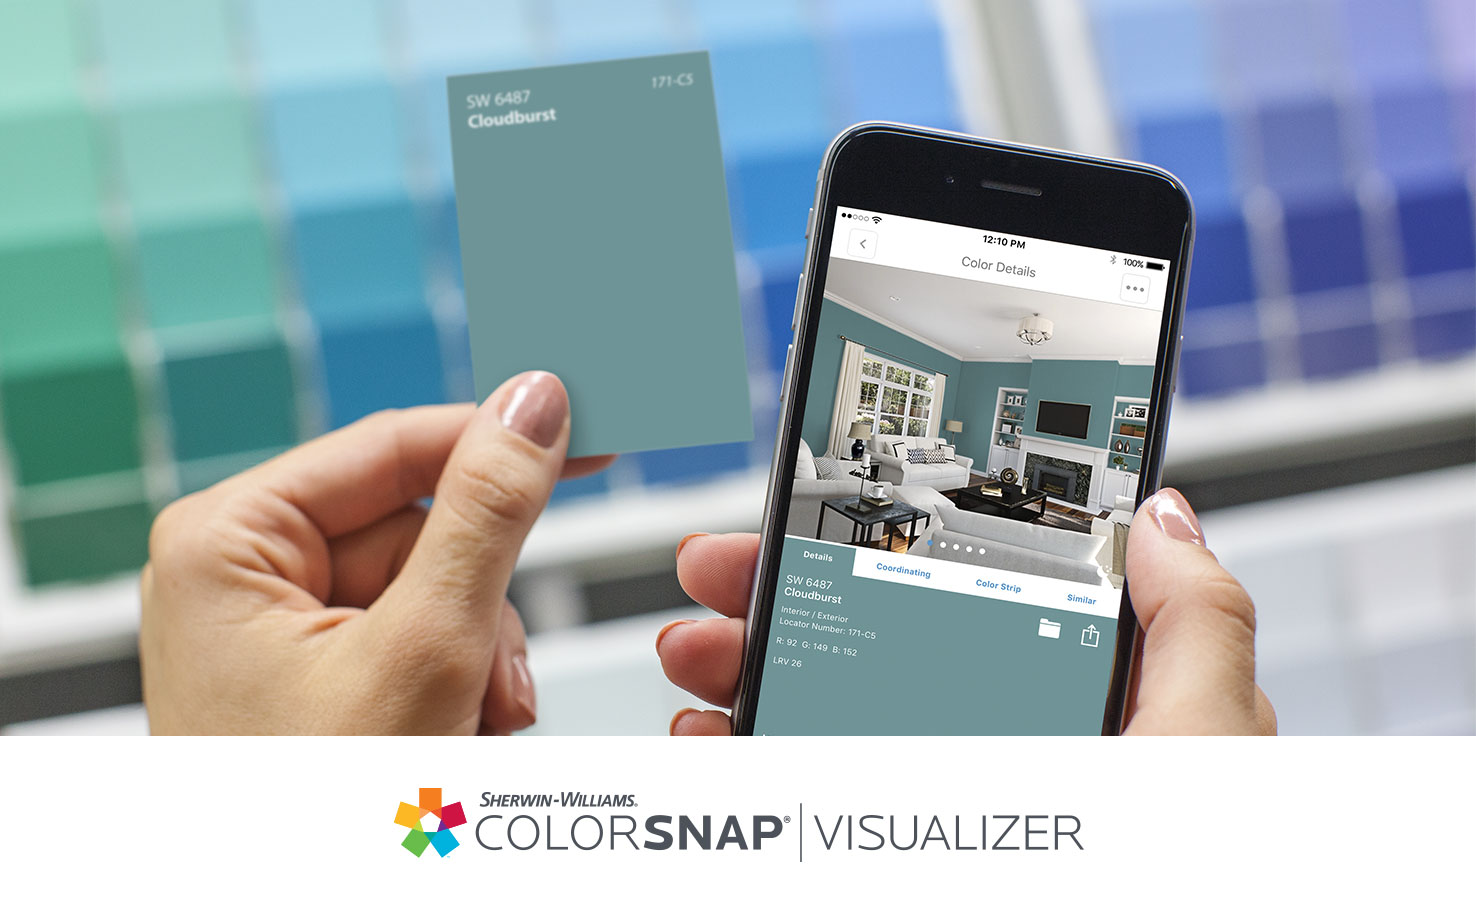 Paint Color Matching App Colorsnap Sherwin Williams Just How Do You Make A Sensor Find The Perfect Anywhere Anytime With Visualizer For Mobile